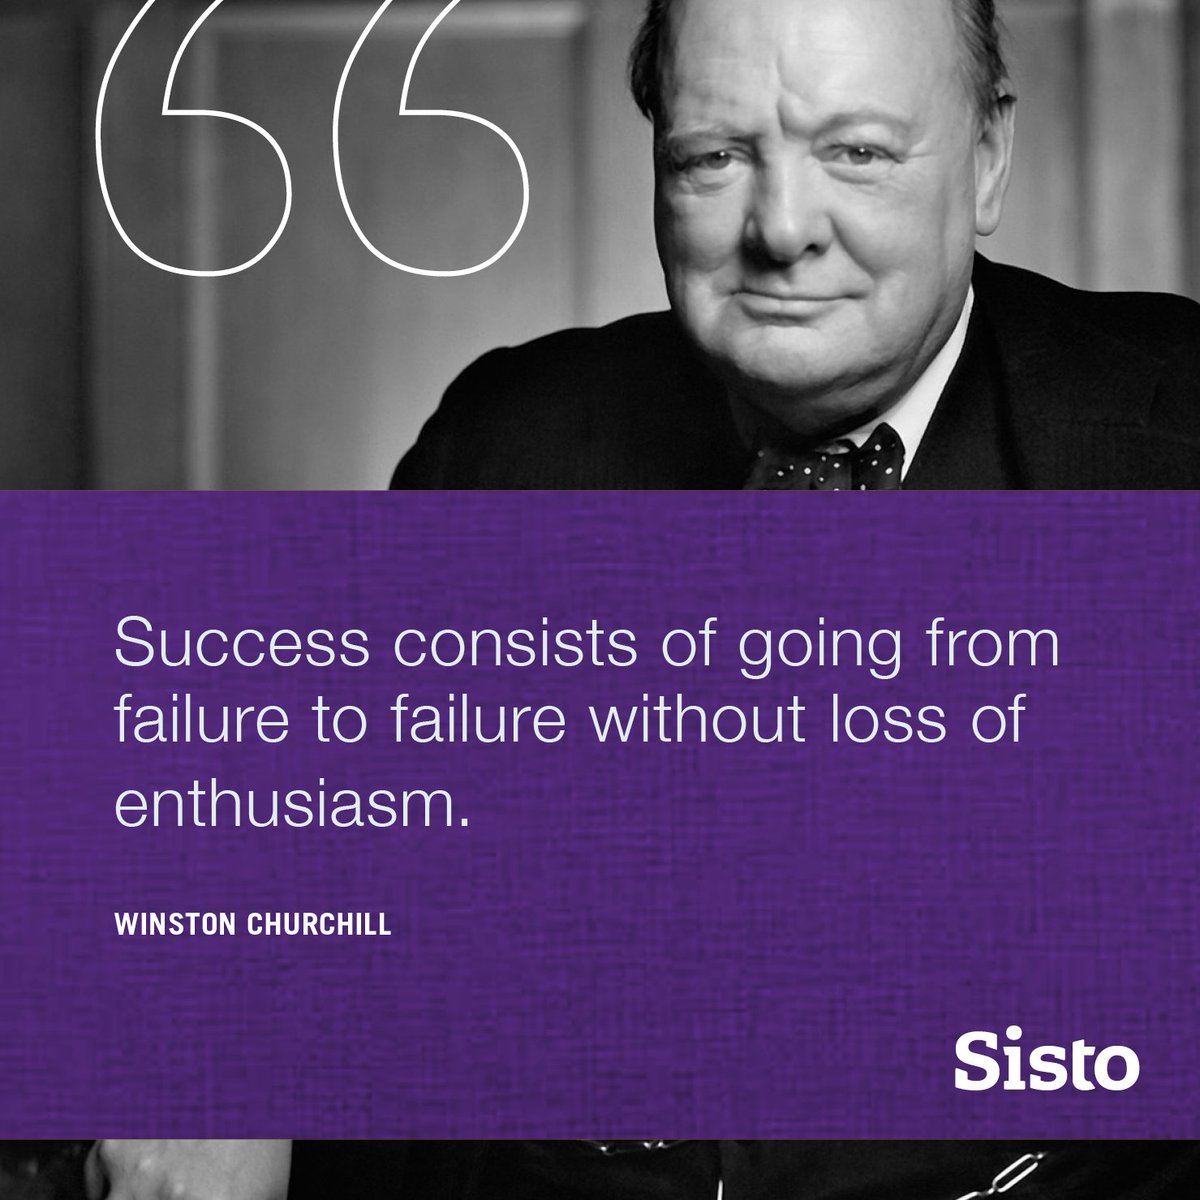 success consists of going from failure to failure without loss of enthusiasm - success consists of going from failure to failure without loss of enthusiasm - sometimes our best is simply not enough we have to do what is required.